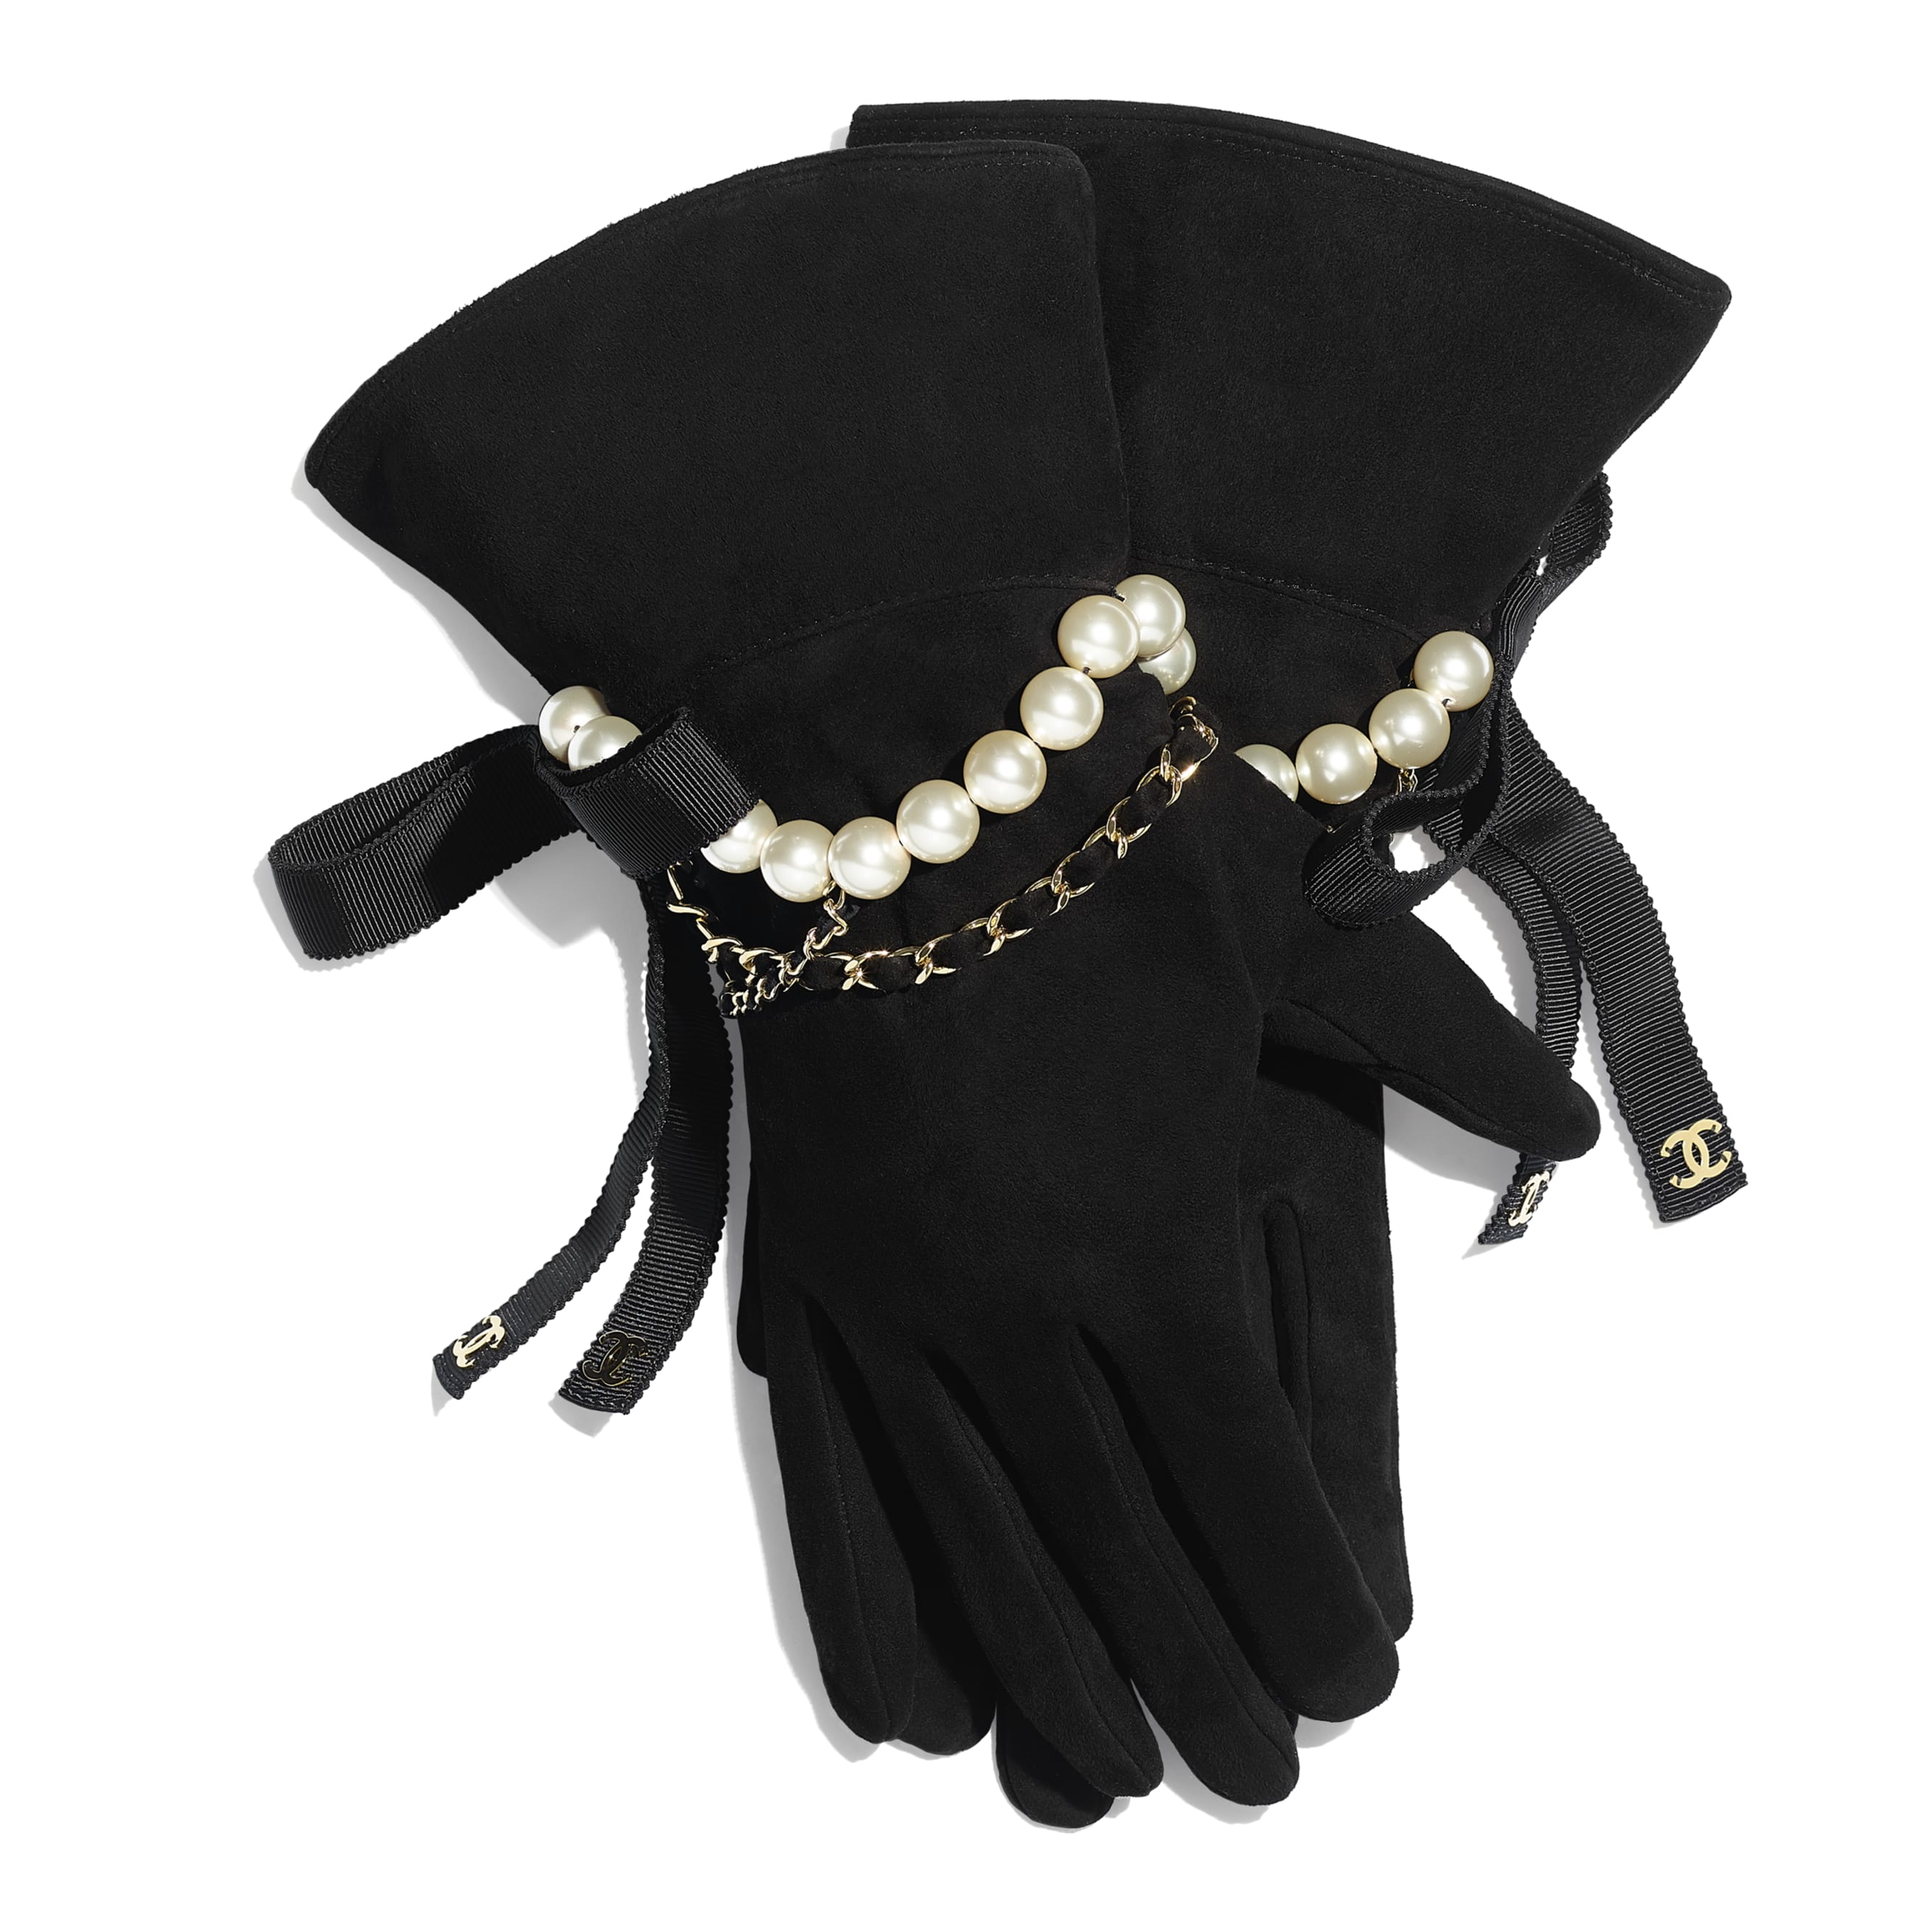 Gloves - Black - Suede Lambskin, Glass Pearls, Grosgrain & Gold-Tone Metal - CHANEL - Default view - see standard sized version